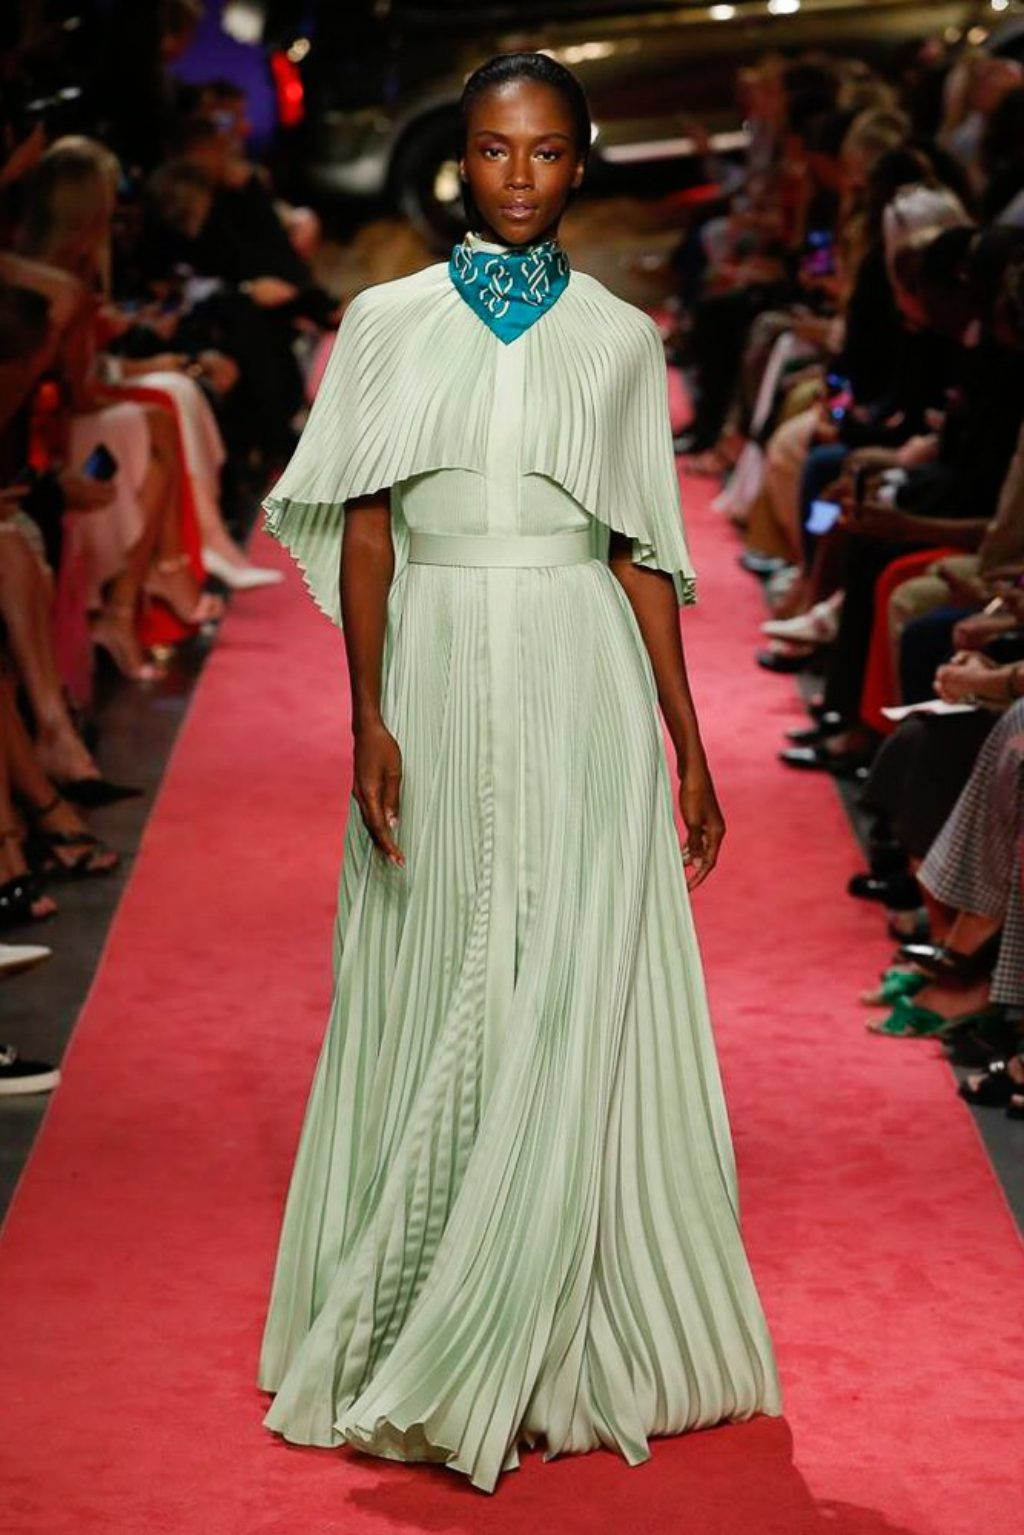 B Maxwell 2019 Spring Summer Collection Runway Model in Sea-Foam Green Flowing Dress